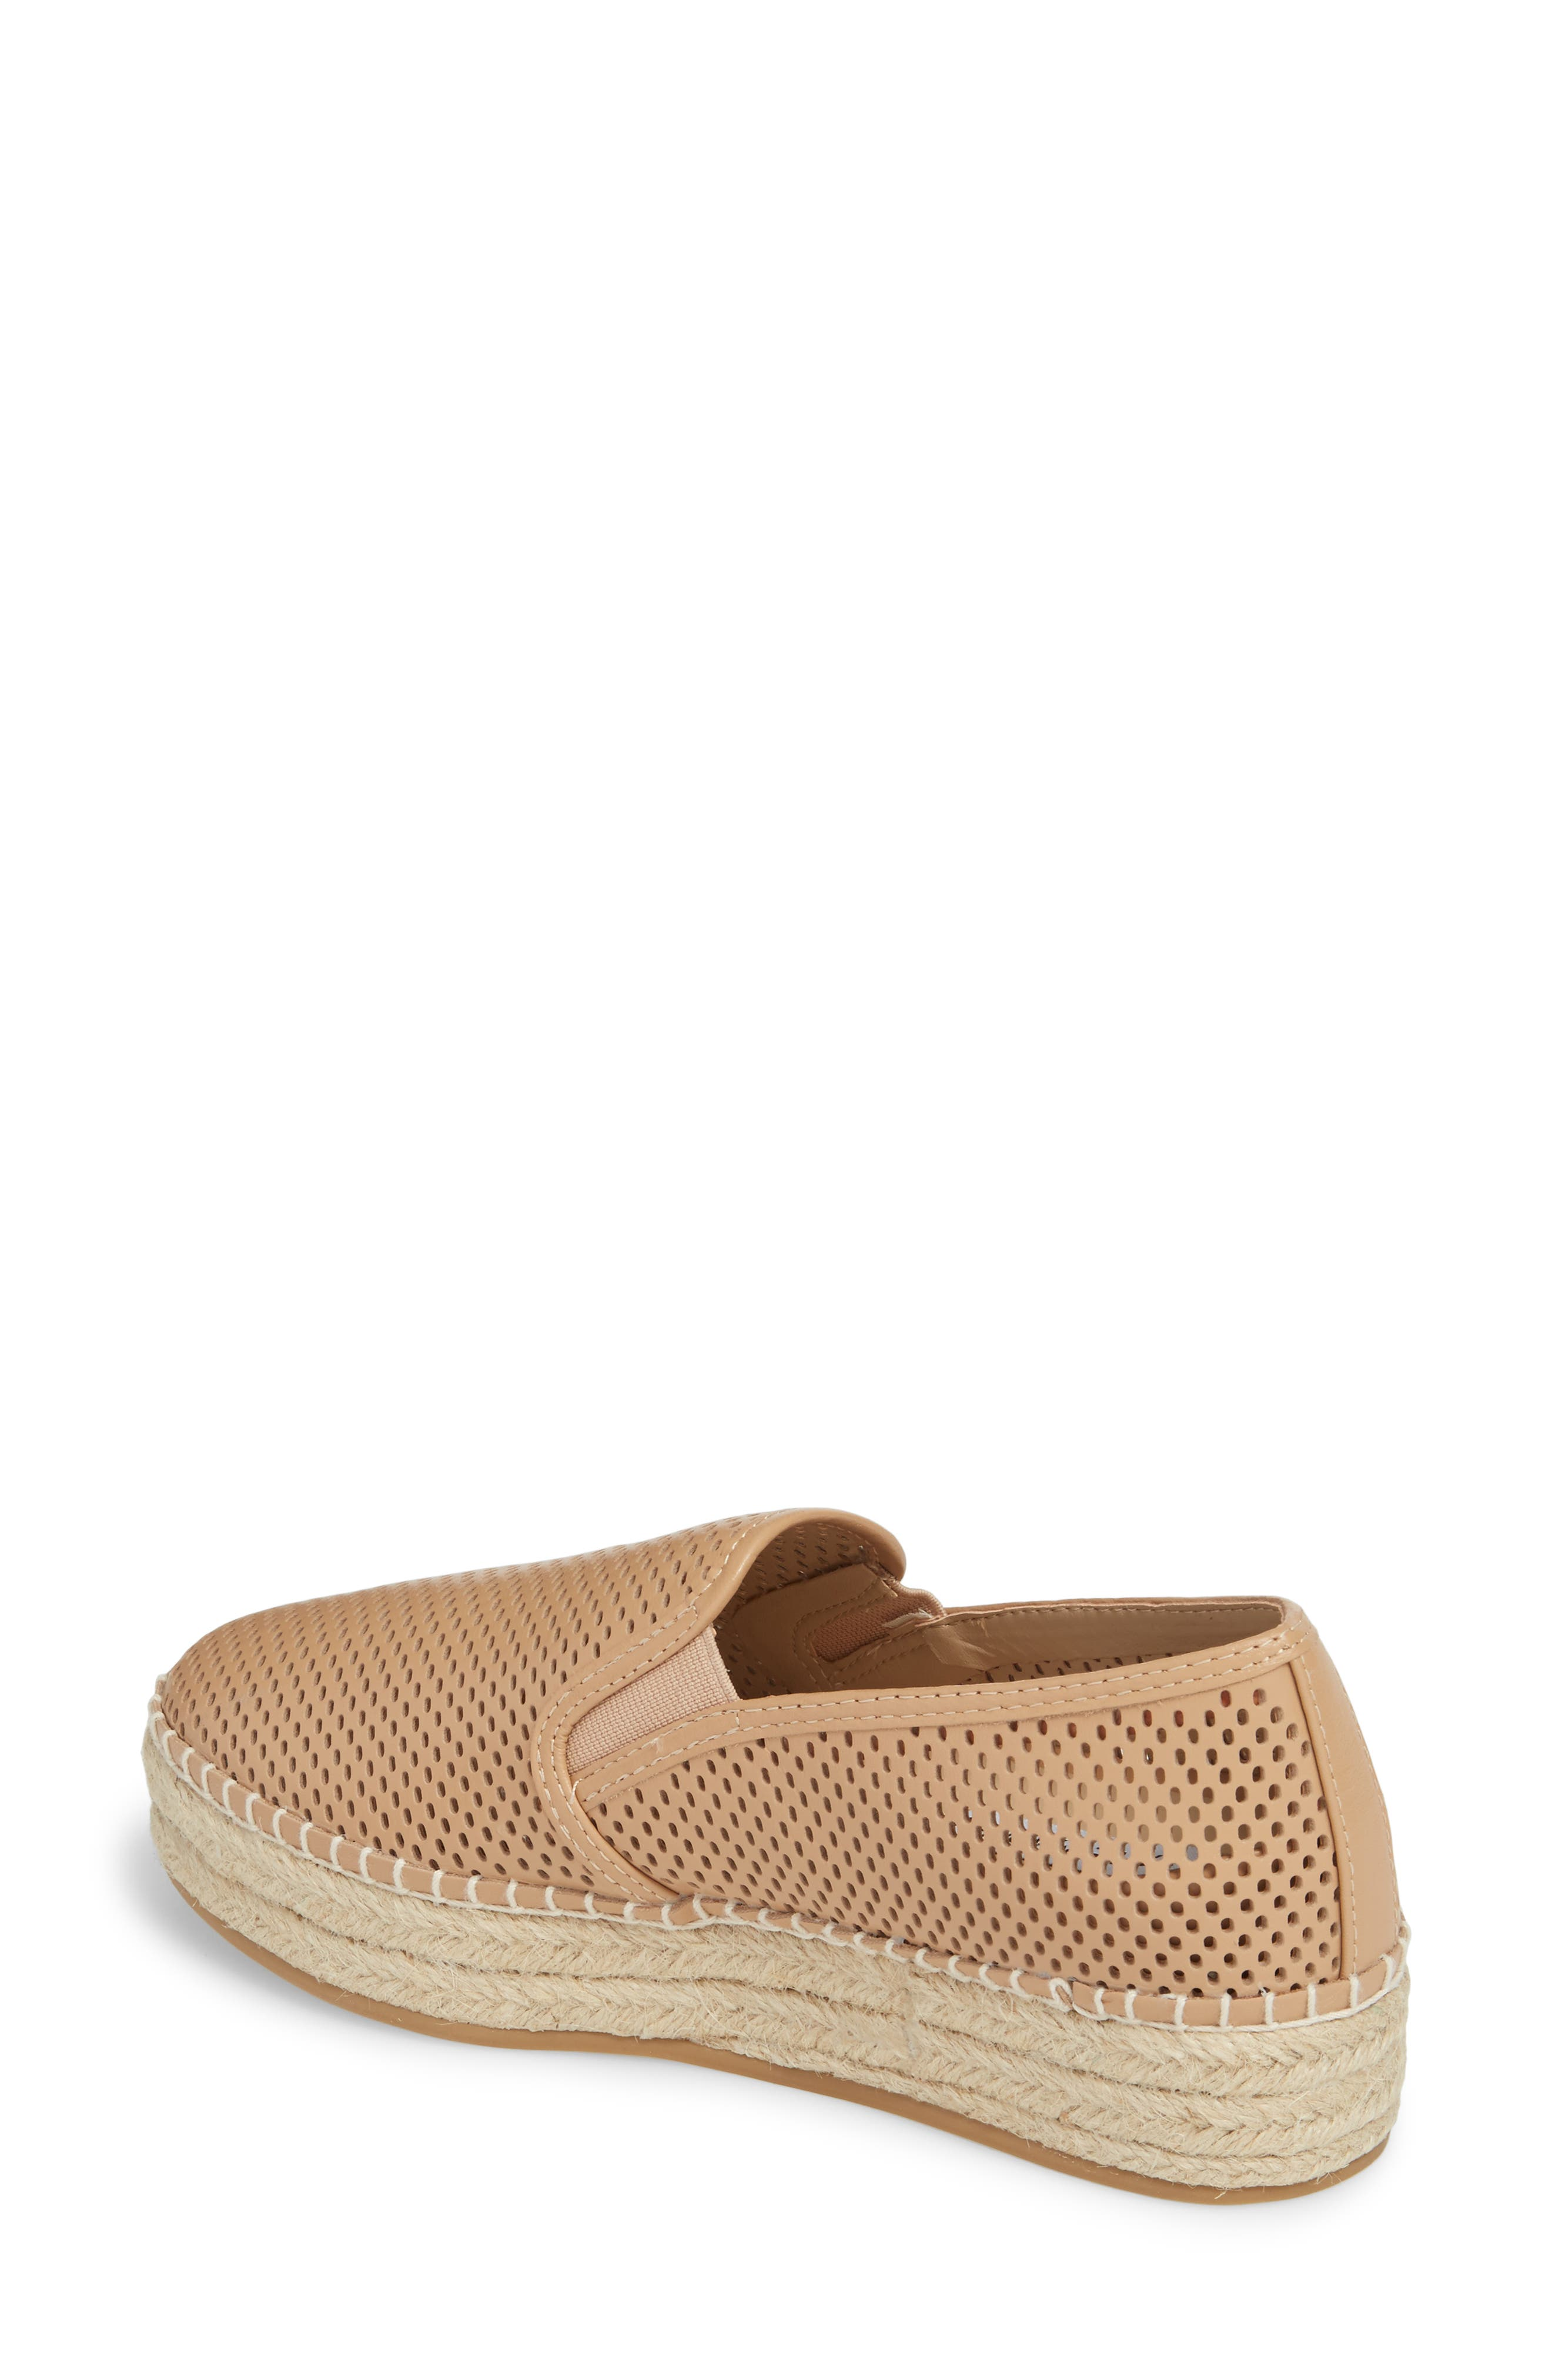 Wright Perforated Platform Espadrille,                             Alternate thumbnail 2, color,                             Natural Leather